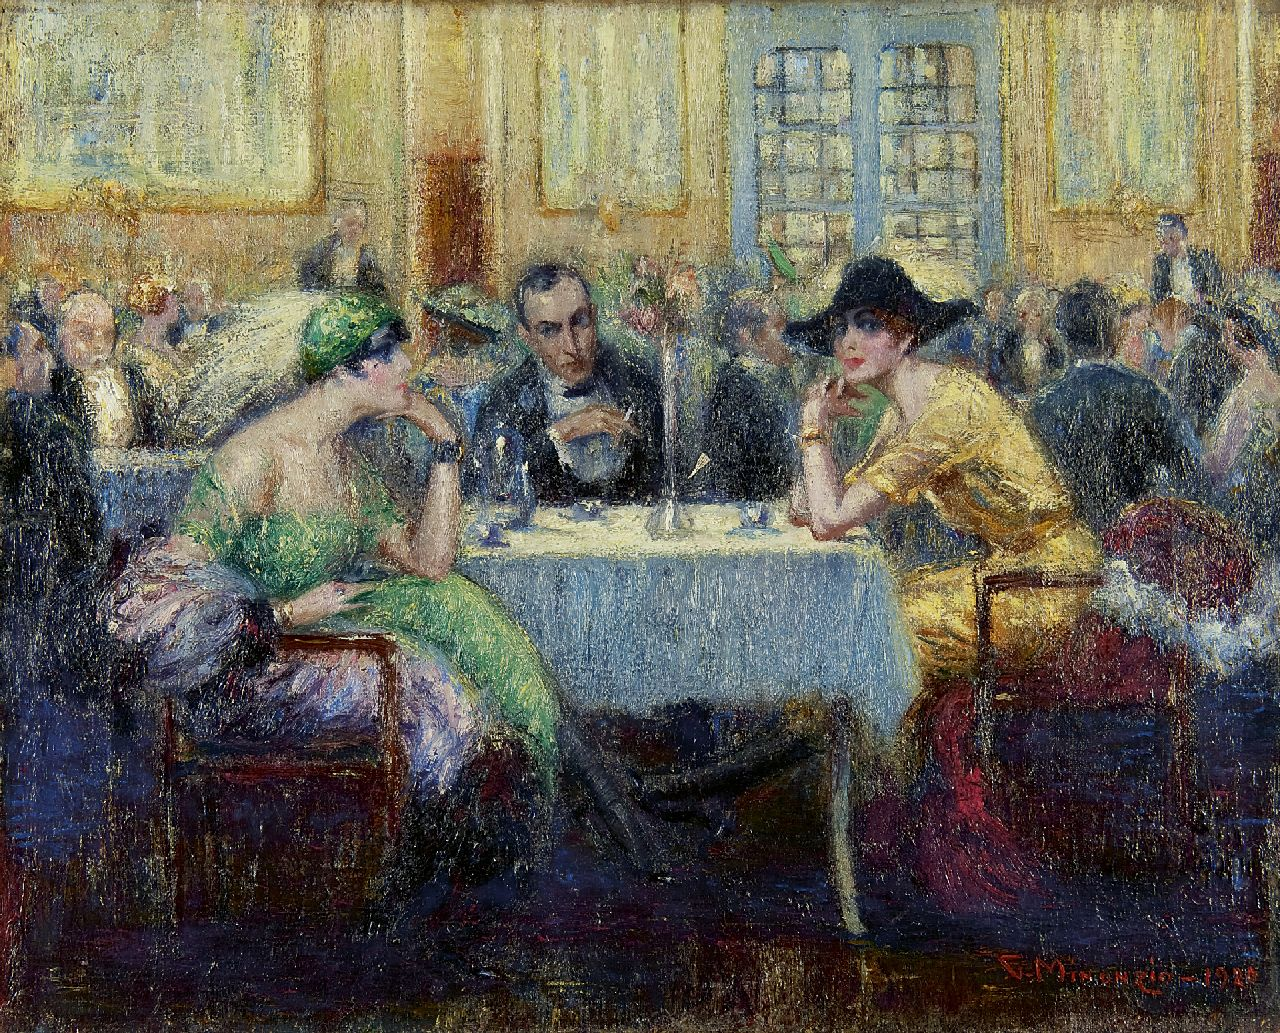 Giuseppe Minonzio | In the Grand Café, oil on canvas, 40.2 x 50.0 cm, signed l.r. and dated 1920